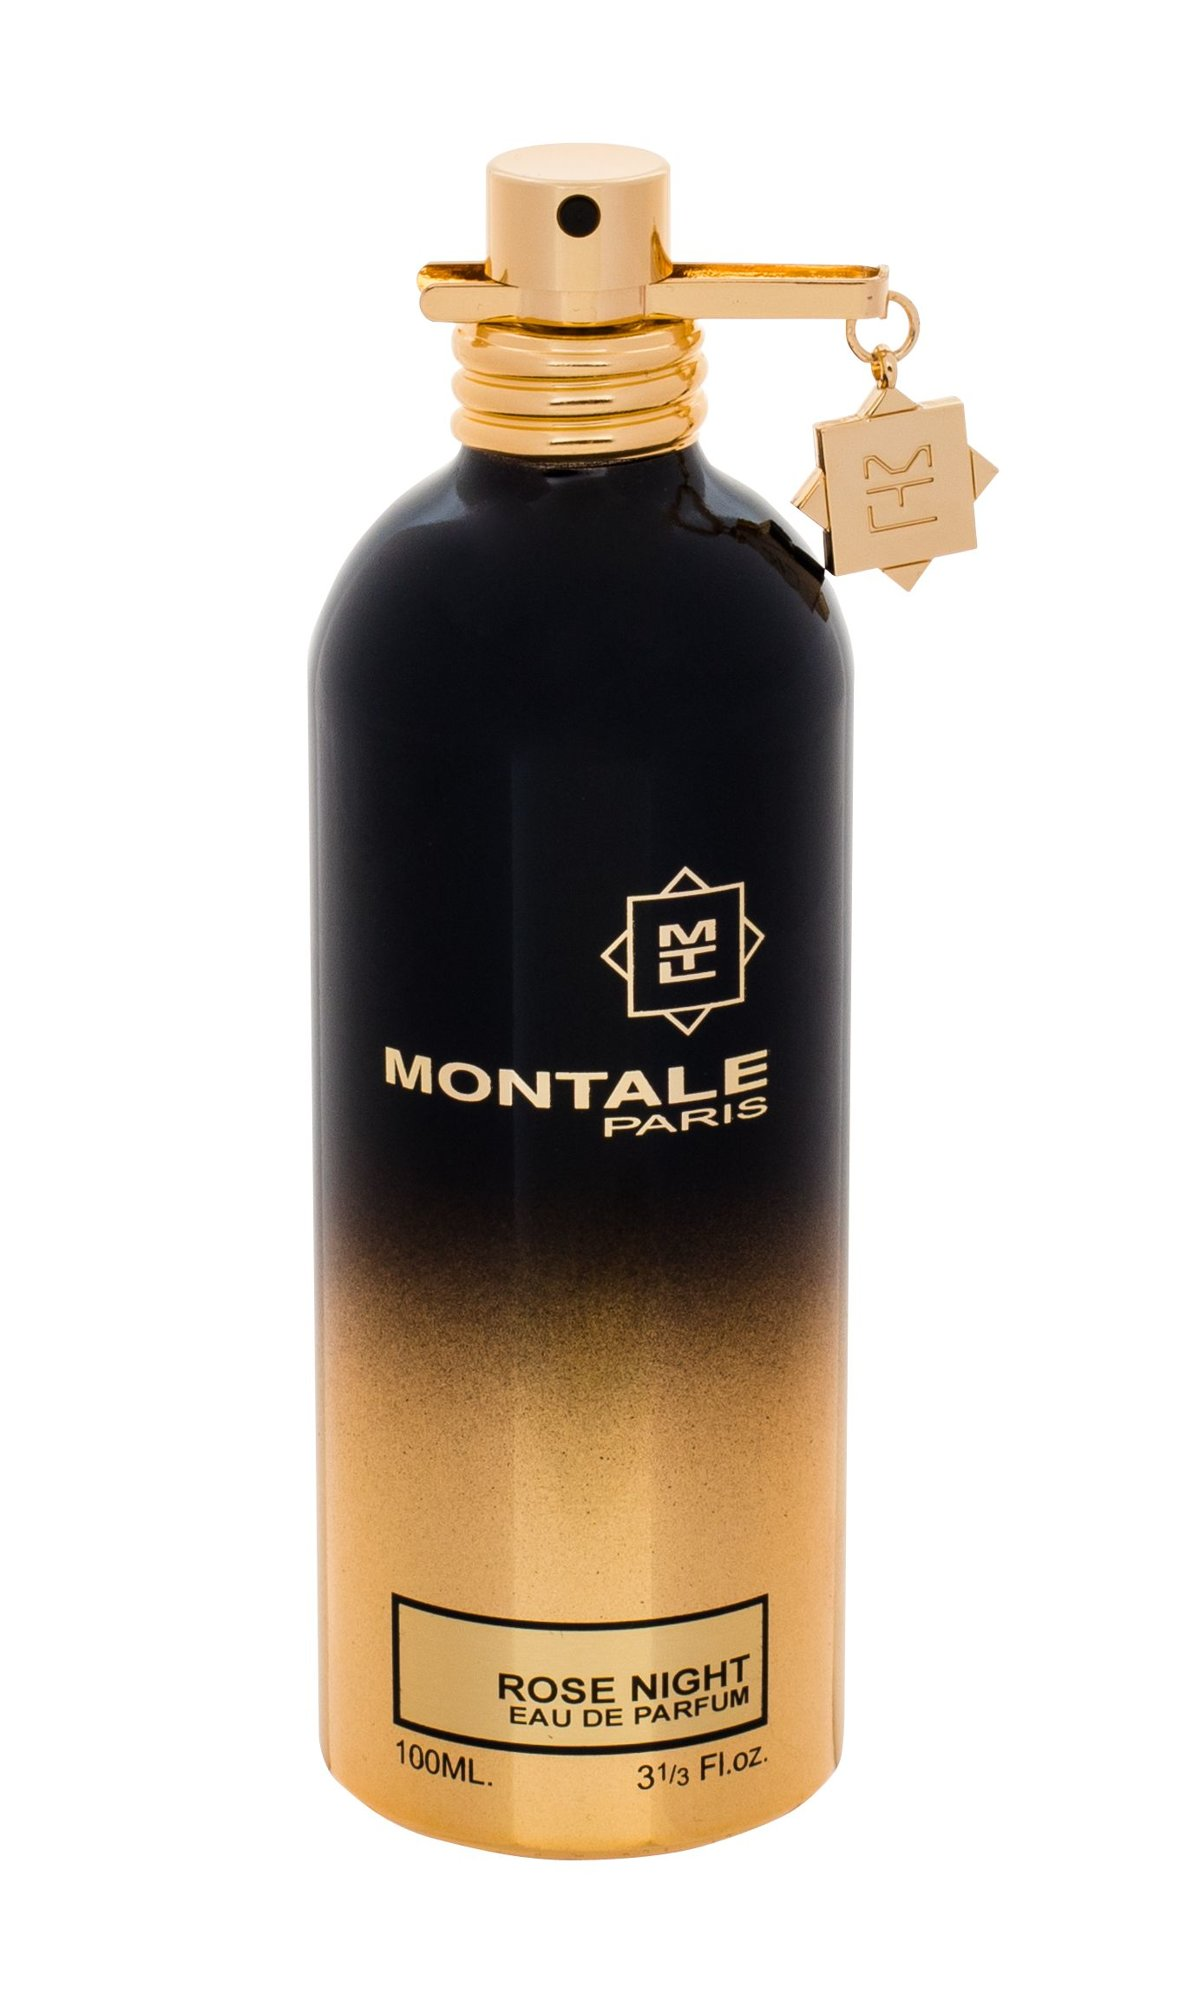 Montale Paris Rose Night Eau de Parfum 100ml